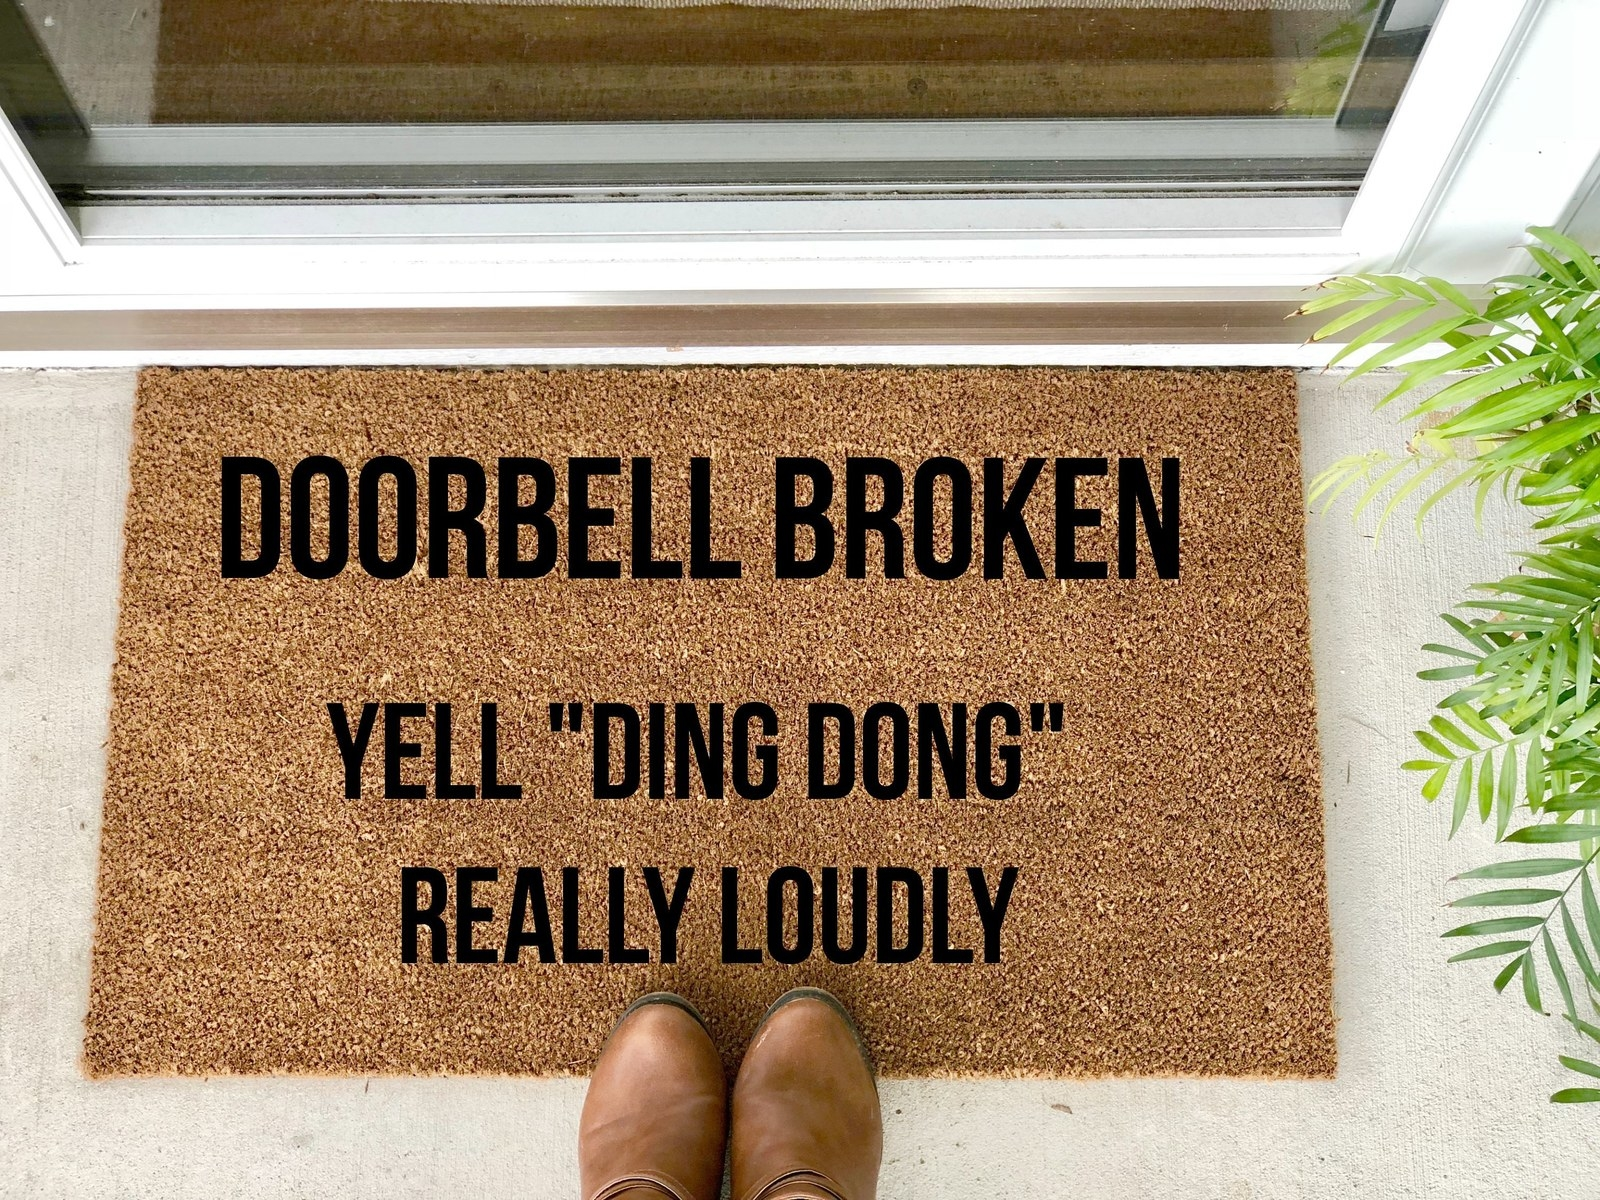 37 Things For People With A Sense Of Humor That's A Little...Off